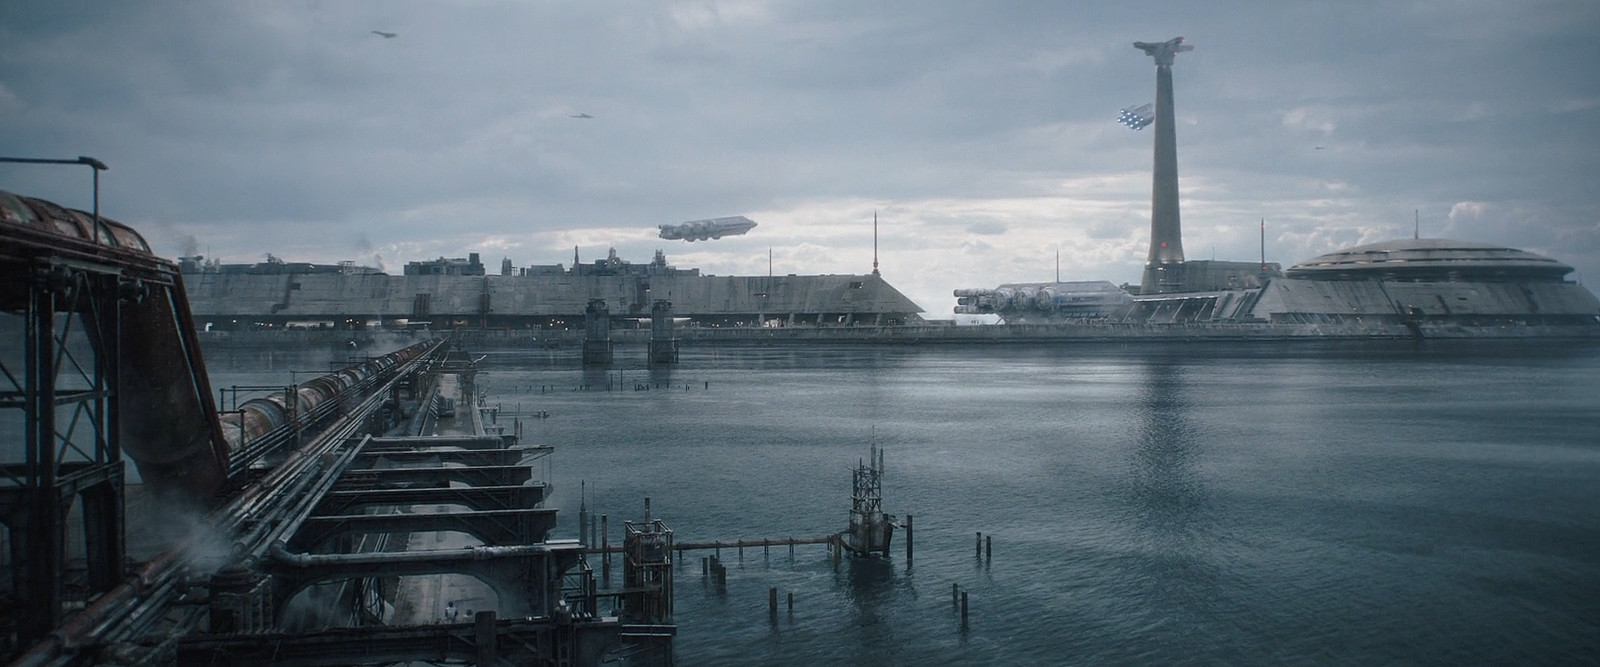 (Solo: A Star Wars Story - ILM) Corellia Starport _ worked closely with Gen to make modular structures for the whole Starport